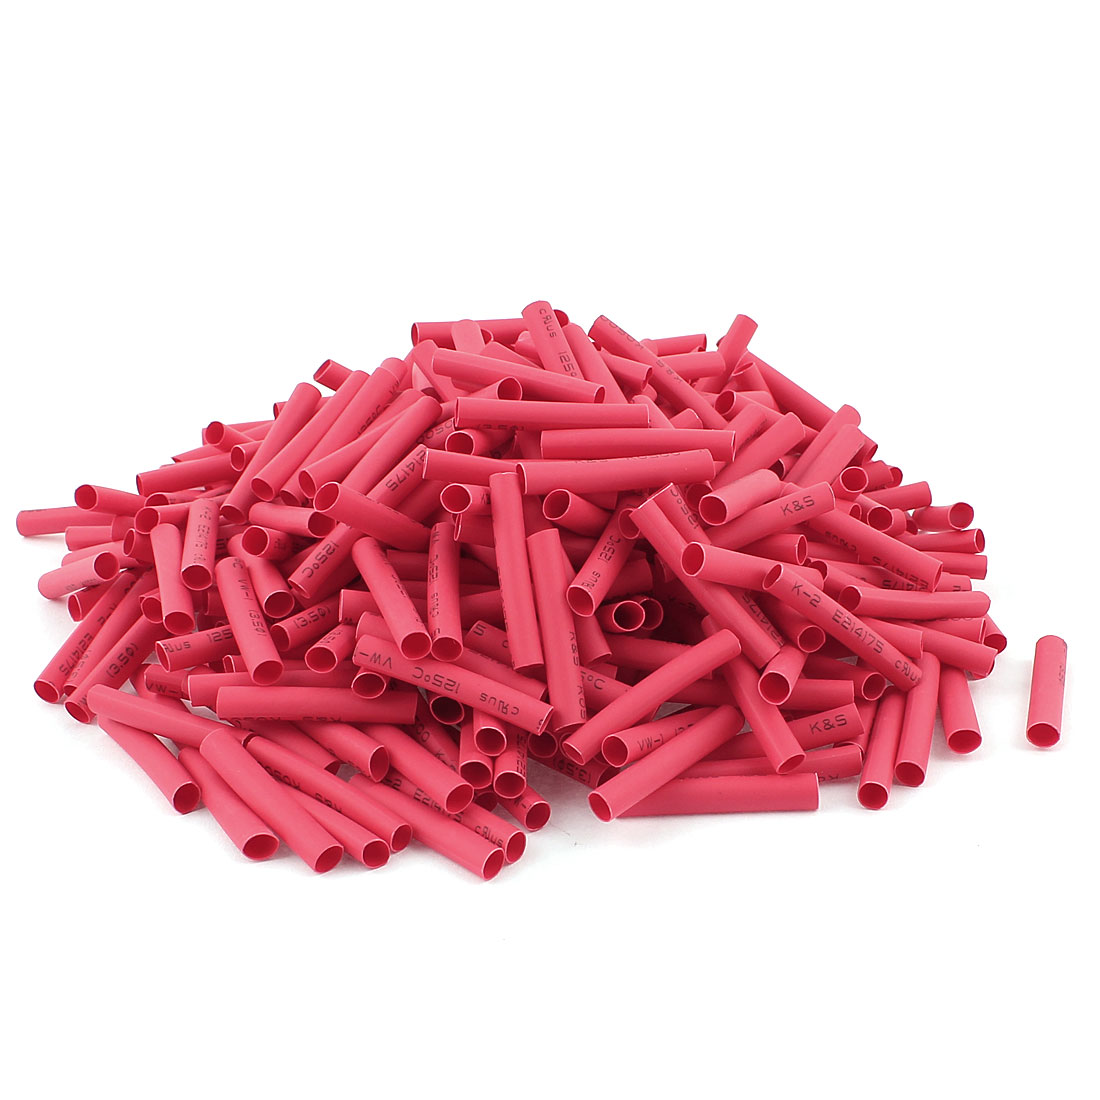 Red 3.5mm Dia 2:1 Polyolefin Heat Shrink Tubing Shrinkable Tube 30mm 400pcs